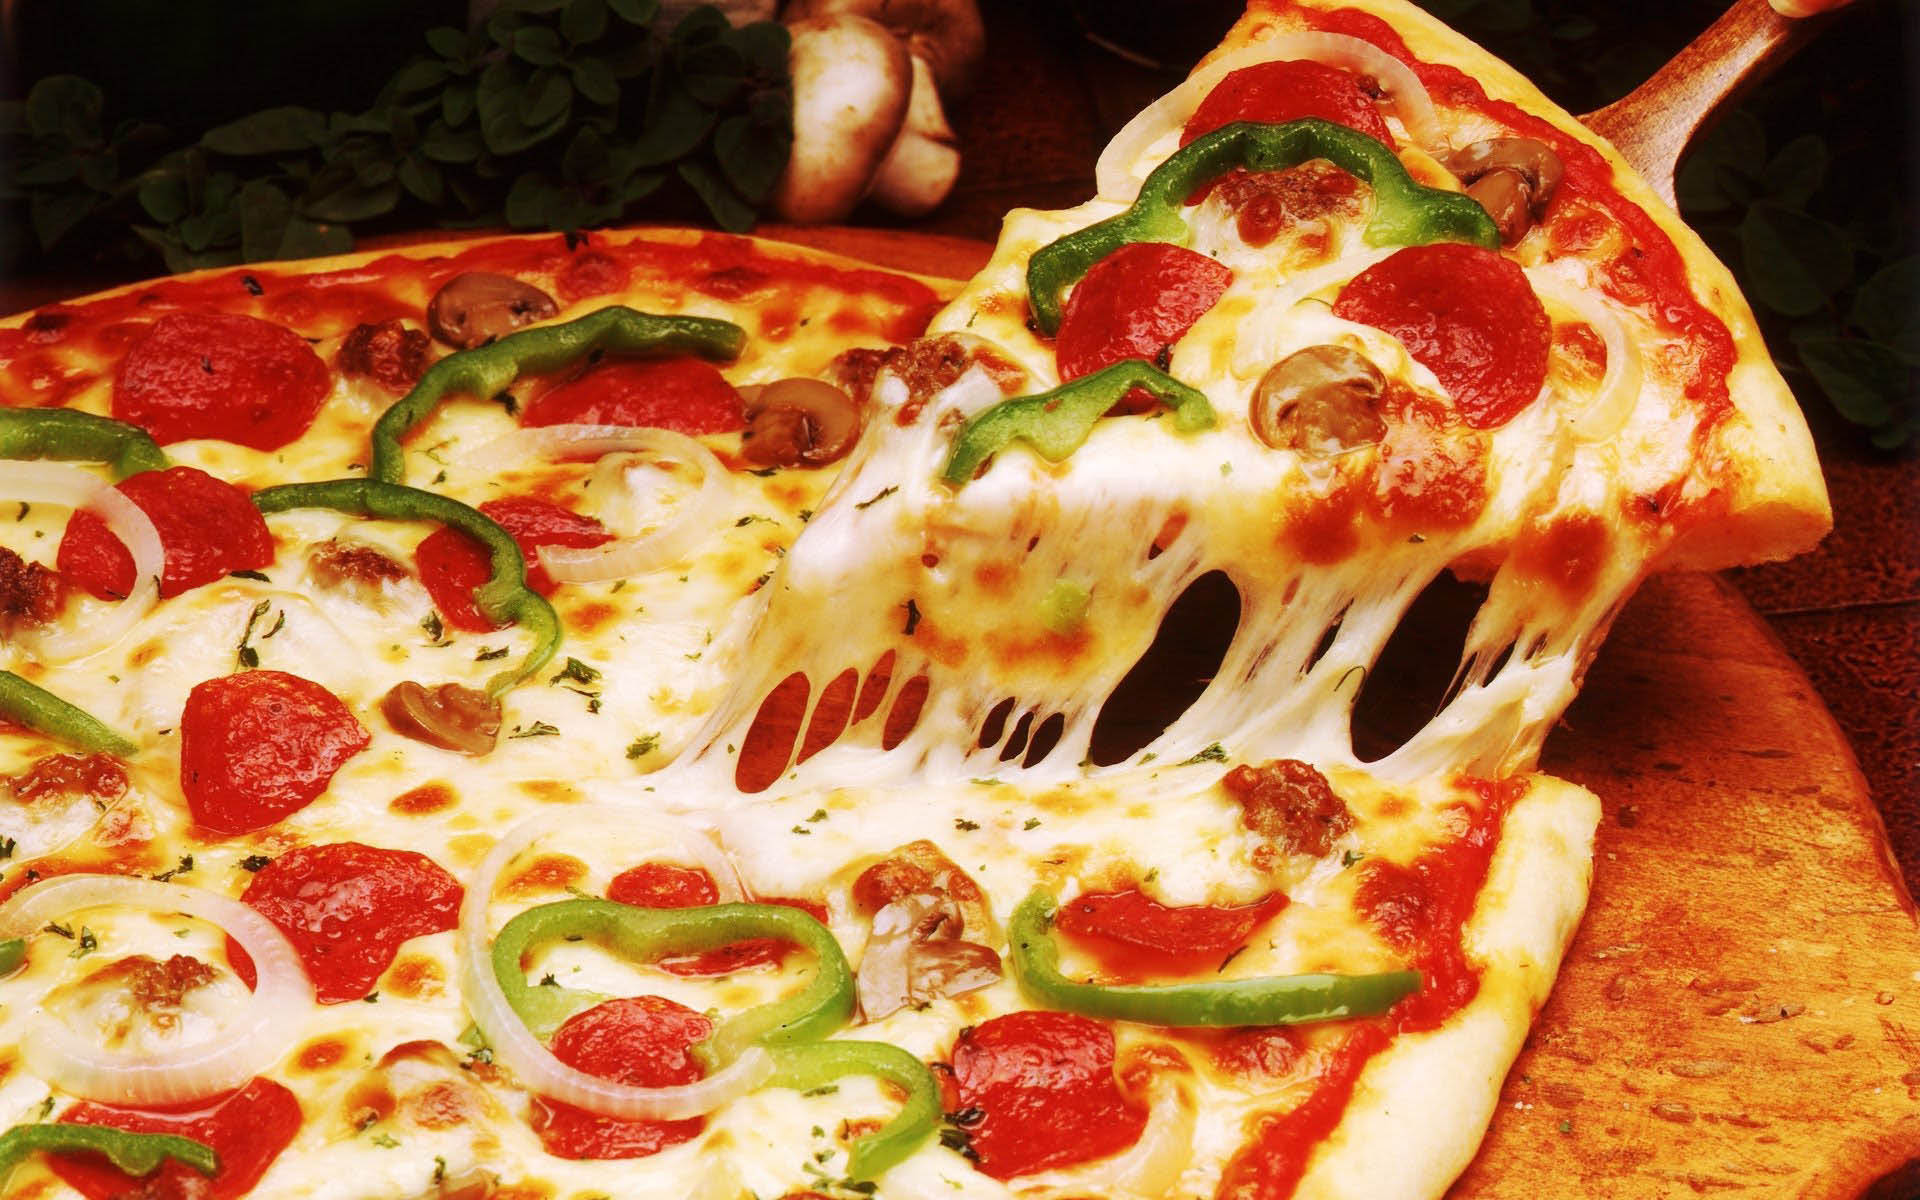 Pizza coupons for savings on freshly made pizza